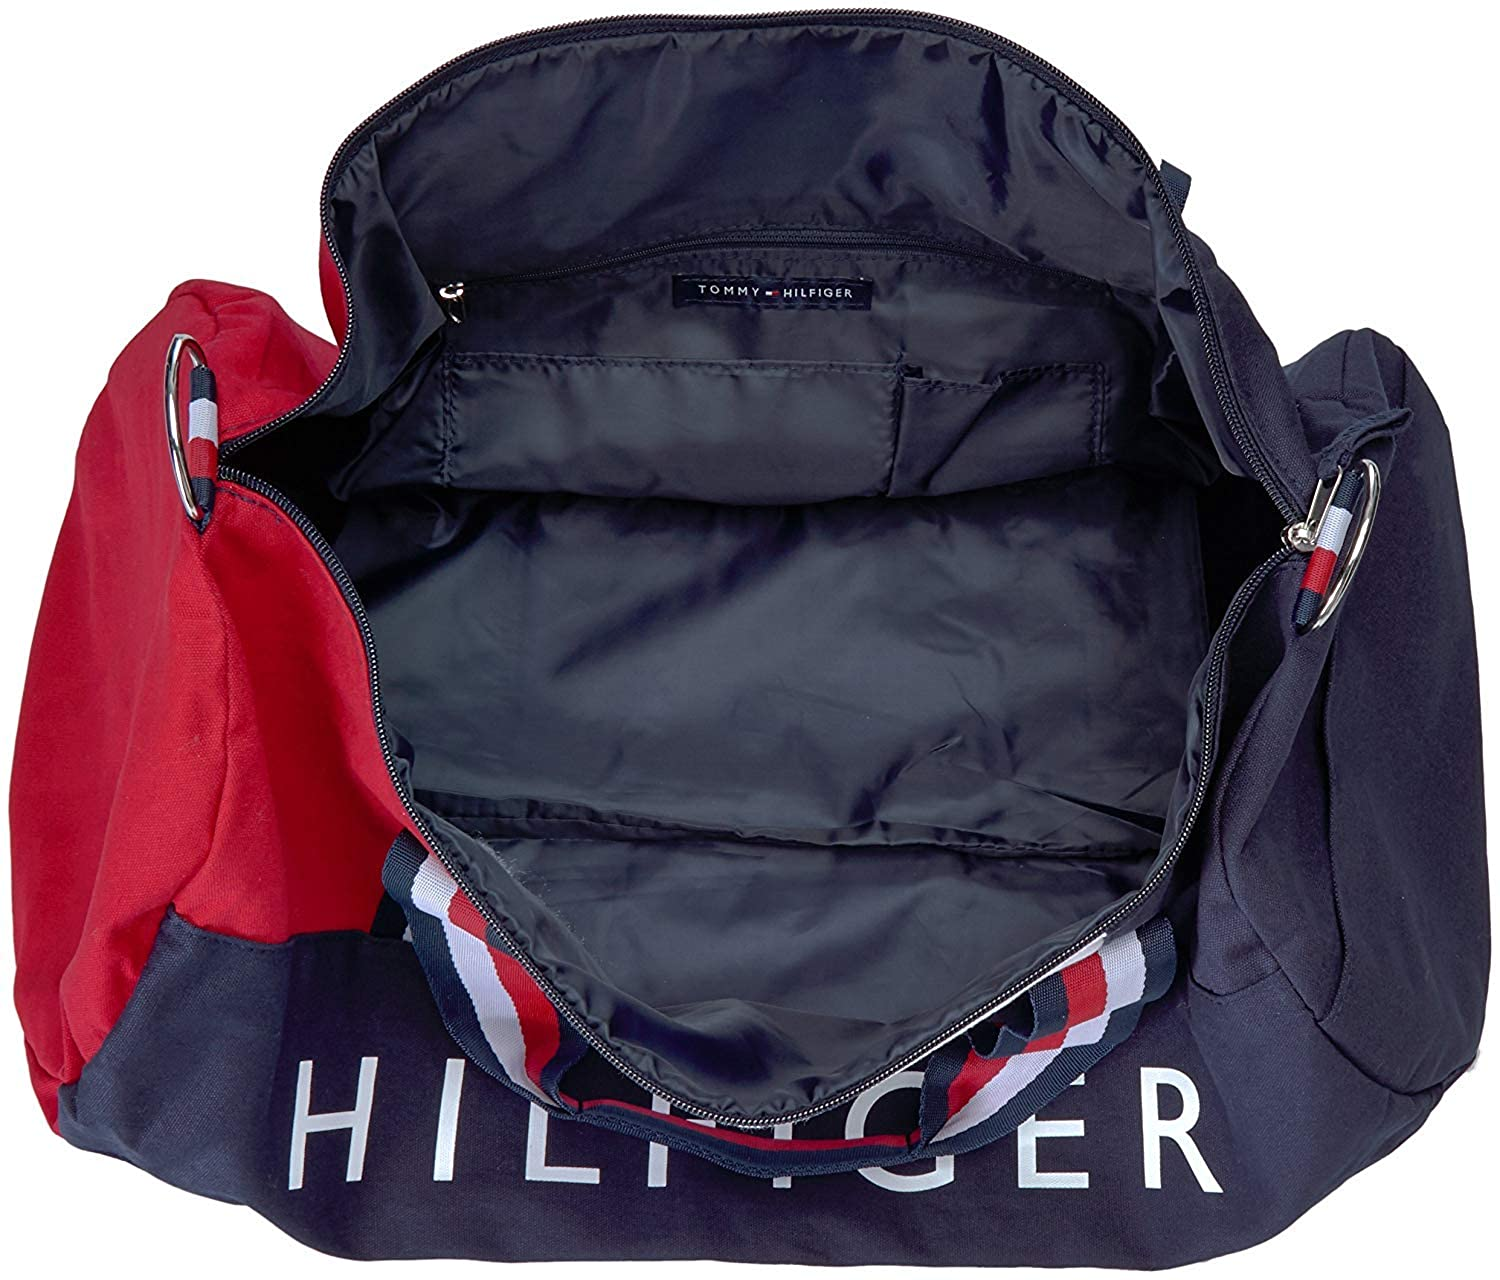 Red and White Stripe Handles Tommy Hilfiger Patriot Duffel Bag with Wide Navy